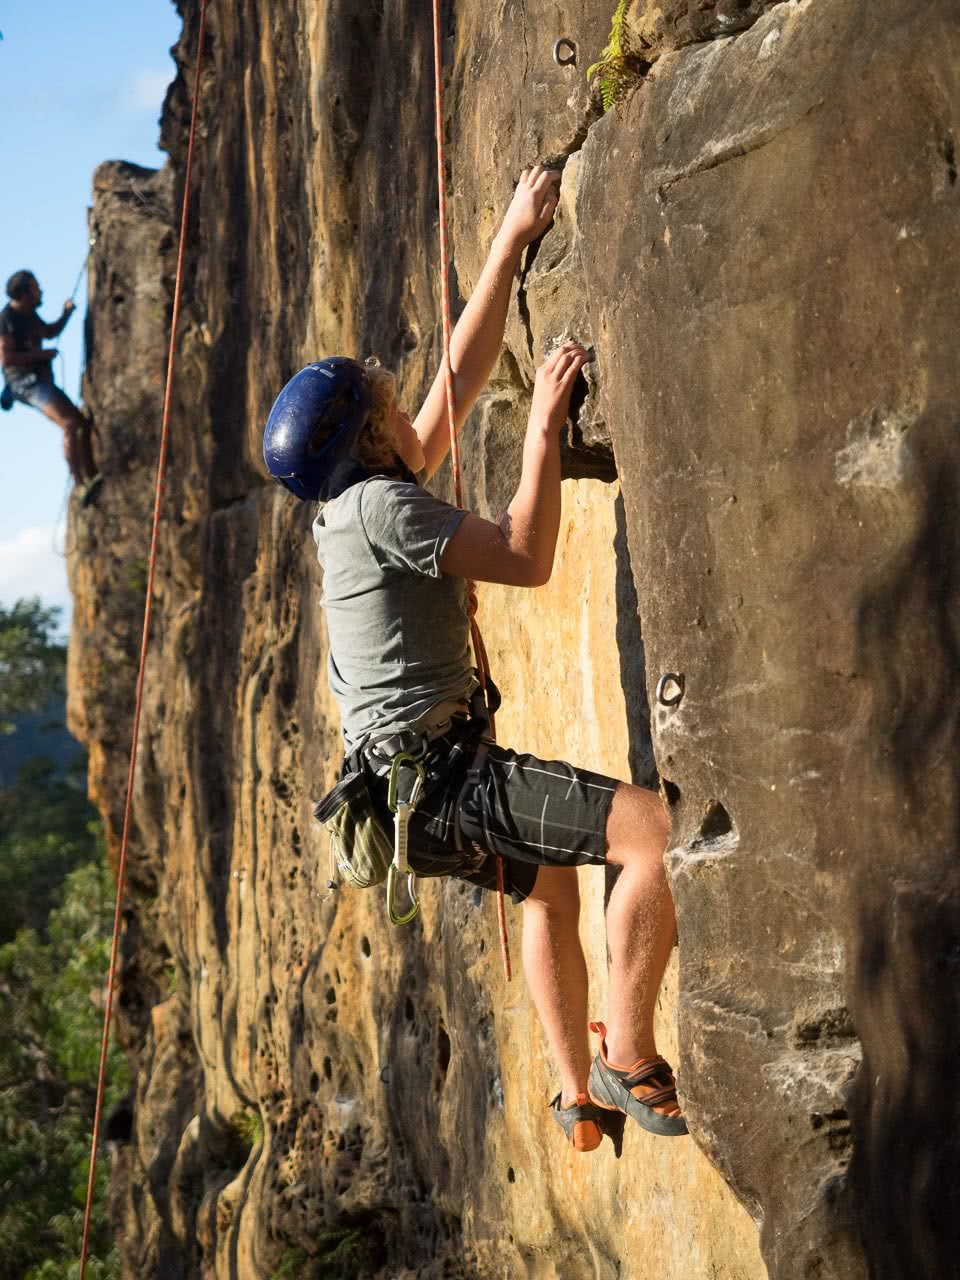 ozlifeoutdoors, james stuart, top rope, berrowra, nsw, sydney, types of rock climbing